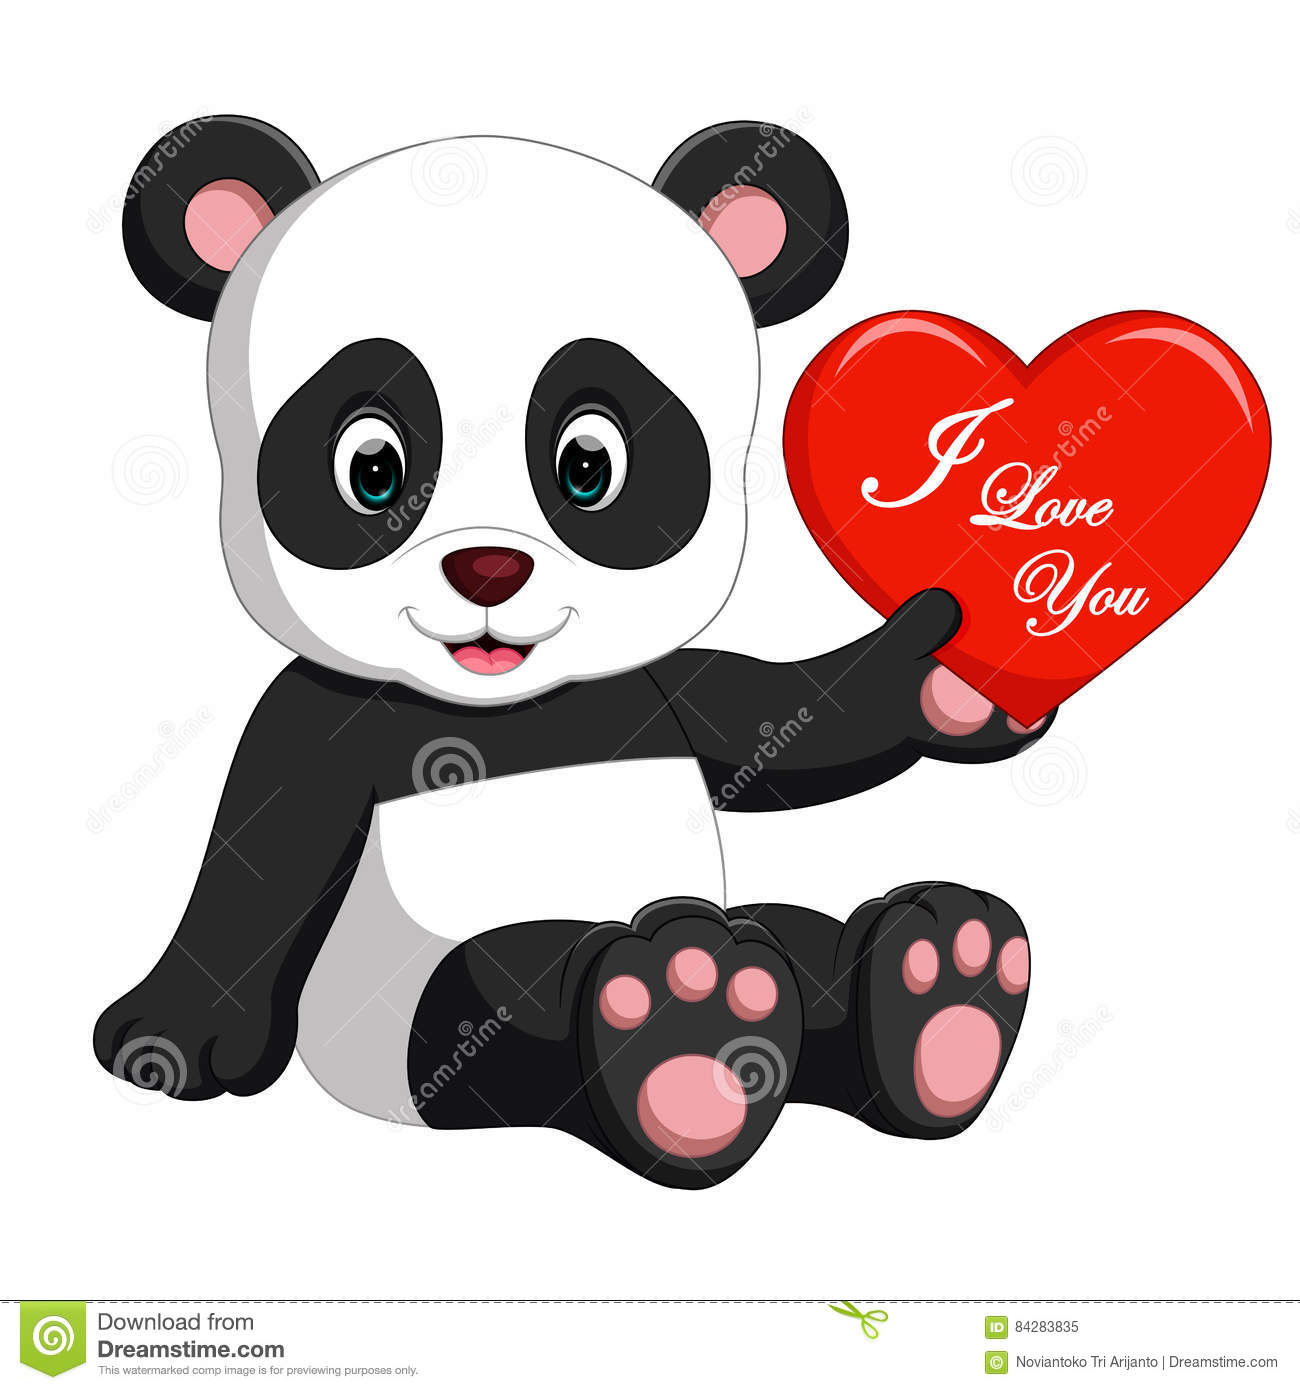 love panda dating Love poems - teenage love poems - long distance love by panda distance is a barrier that can cause a great deal of pain but the pain is still never more than the joy.